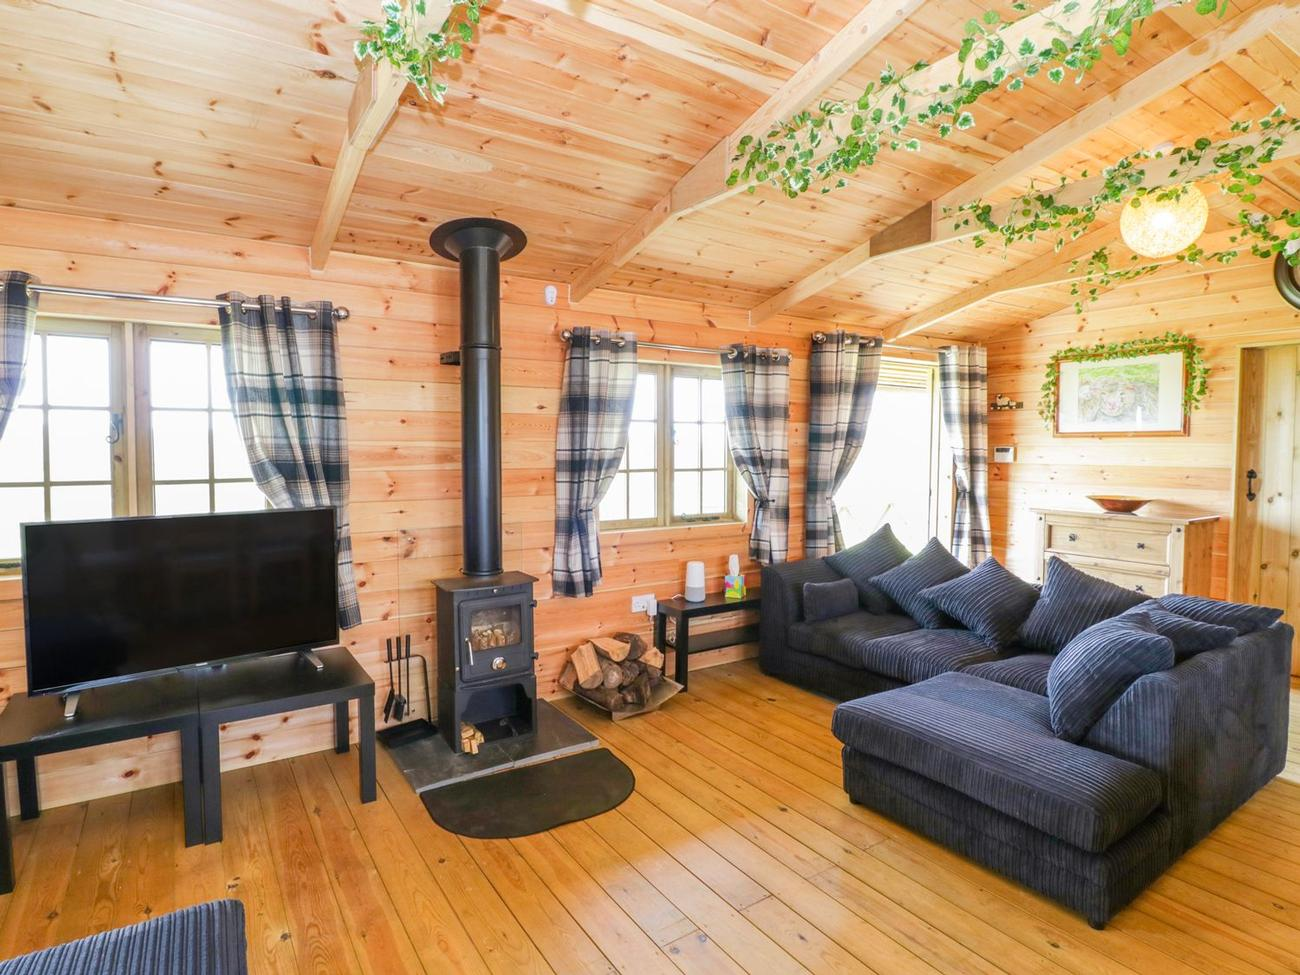 holiday home rental  in Dorset and Evershot